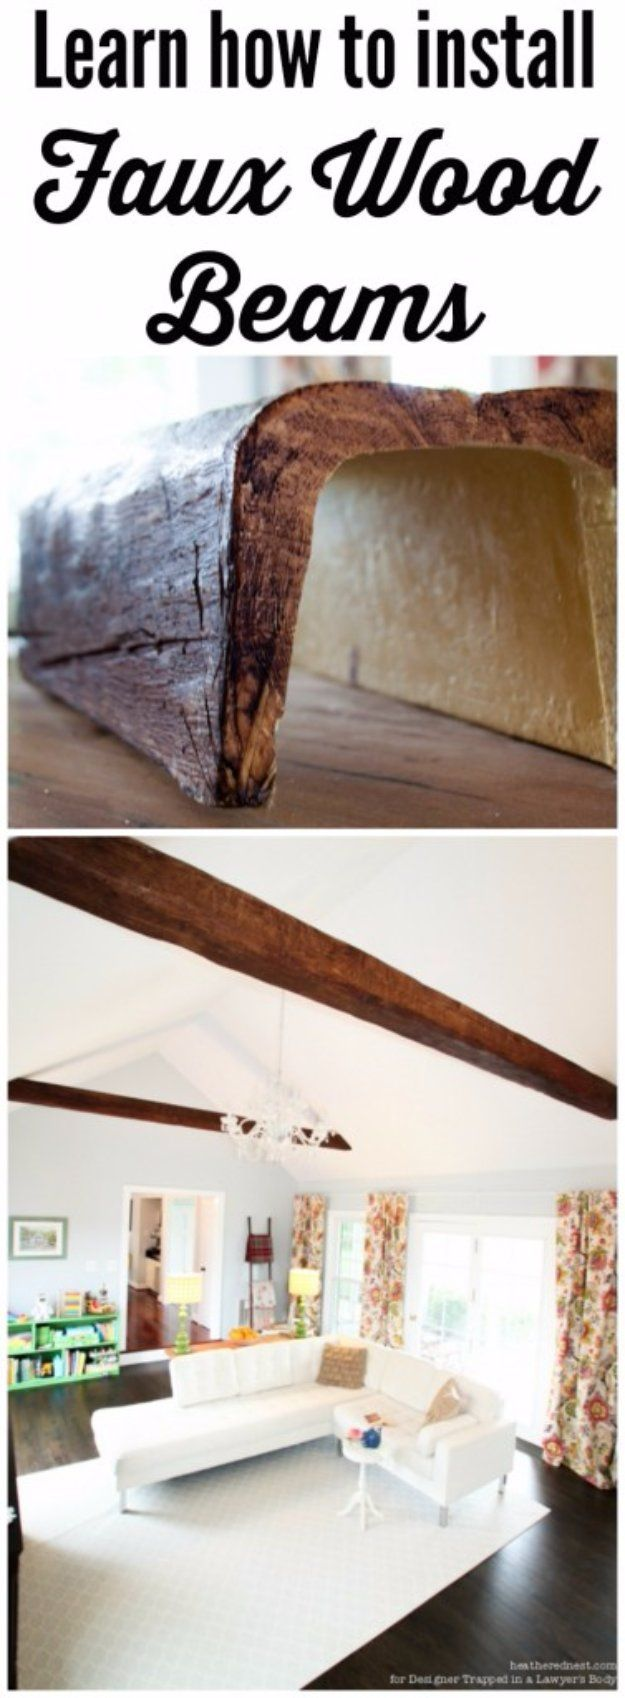 Best 25+ Home improvement ideas on Pinterest | Diy home ...